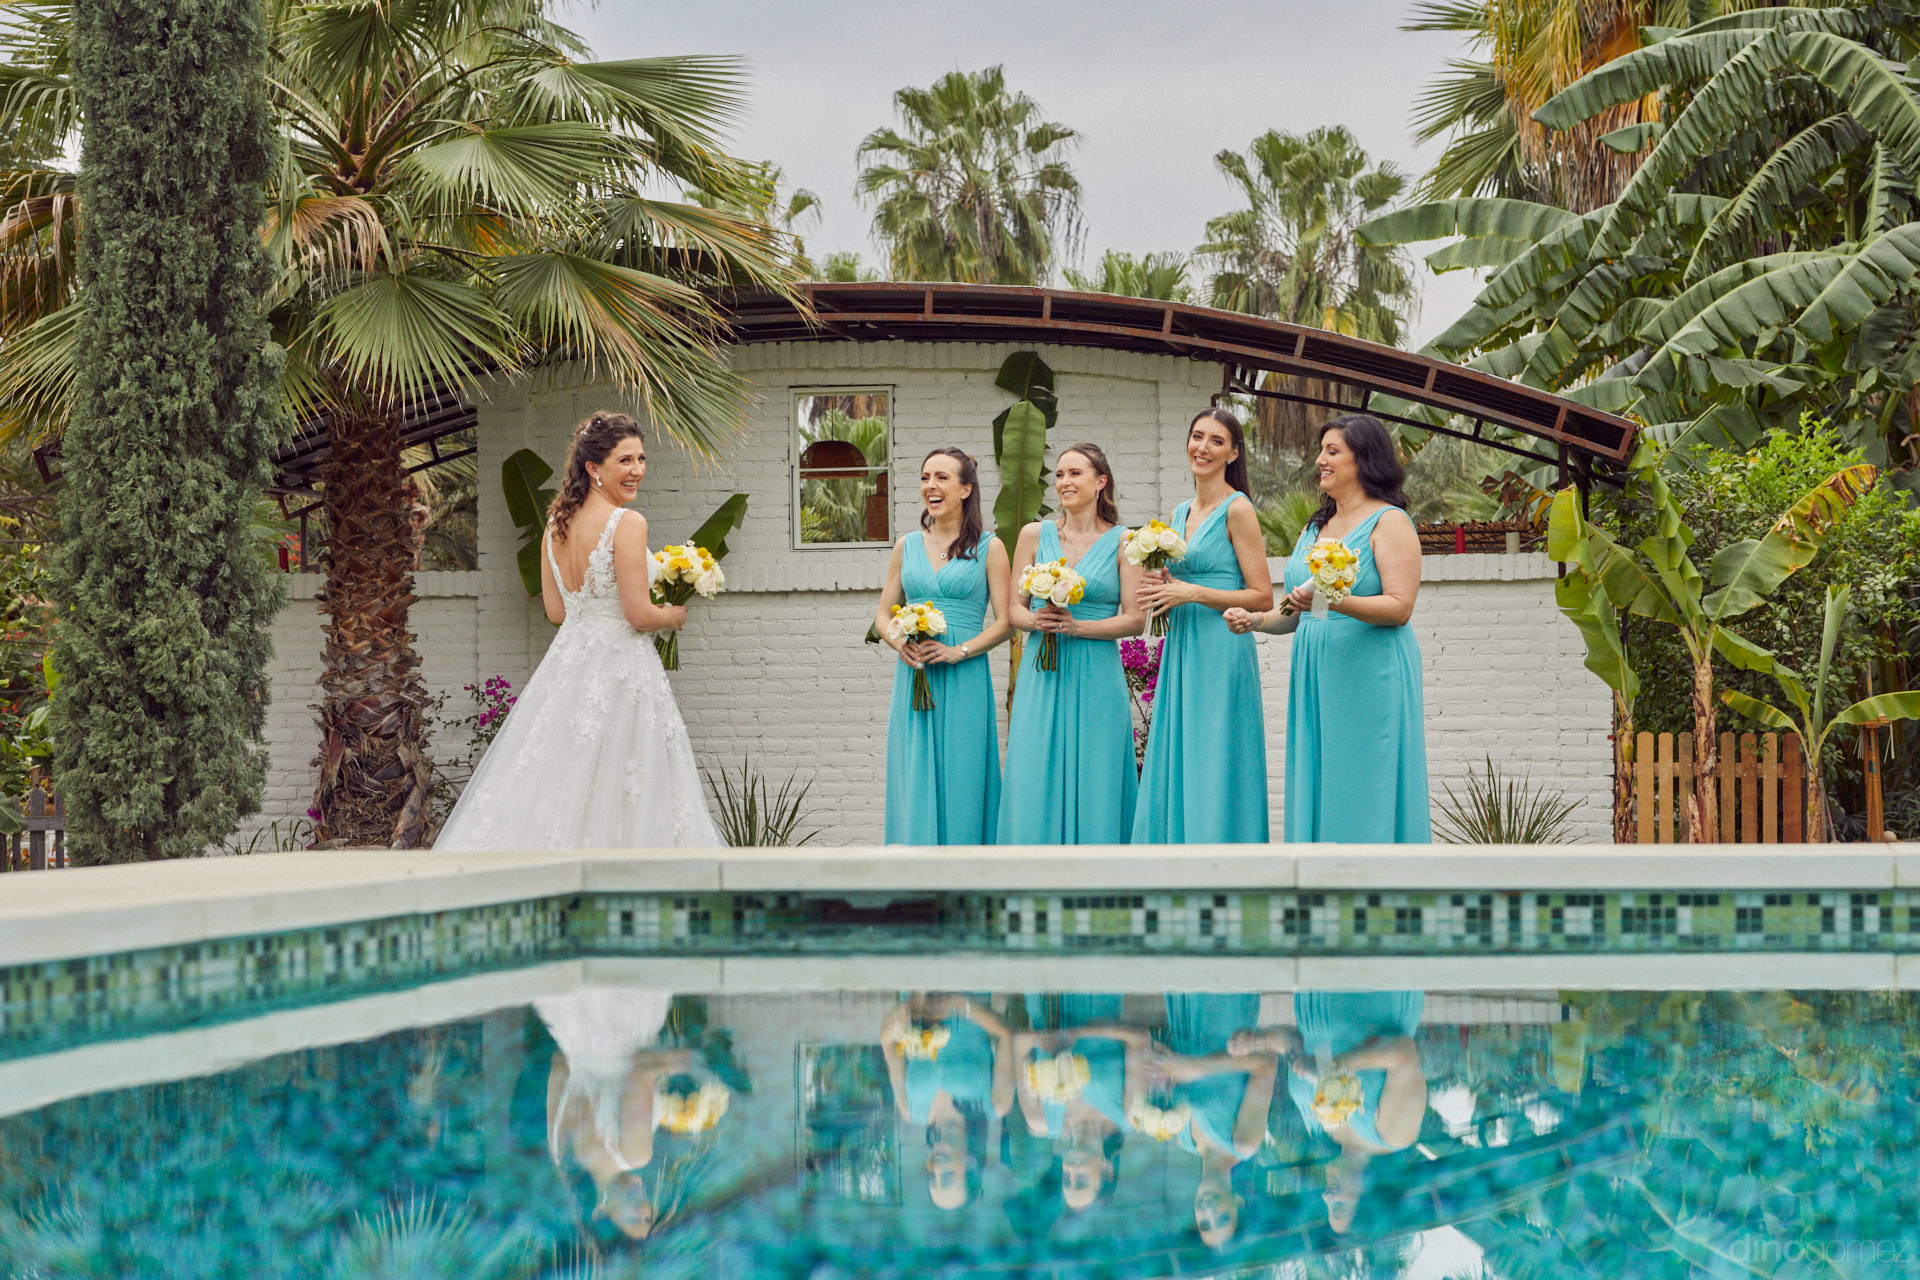 Top Wedding Photographers In Cabo - Hilary & Bryan Flora Wedding